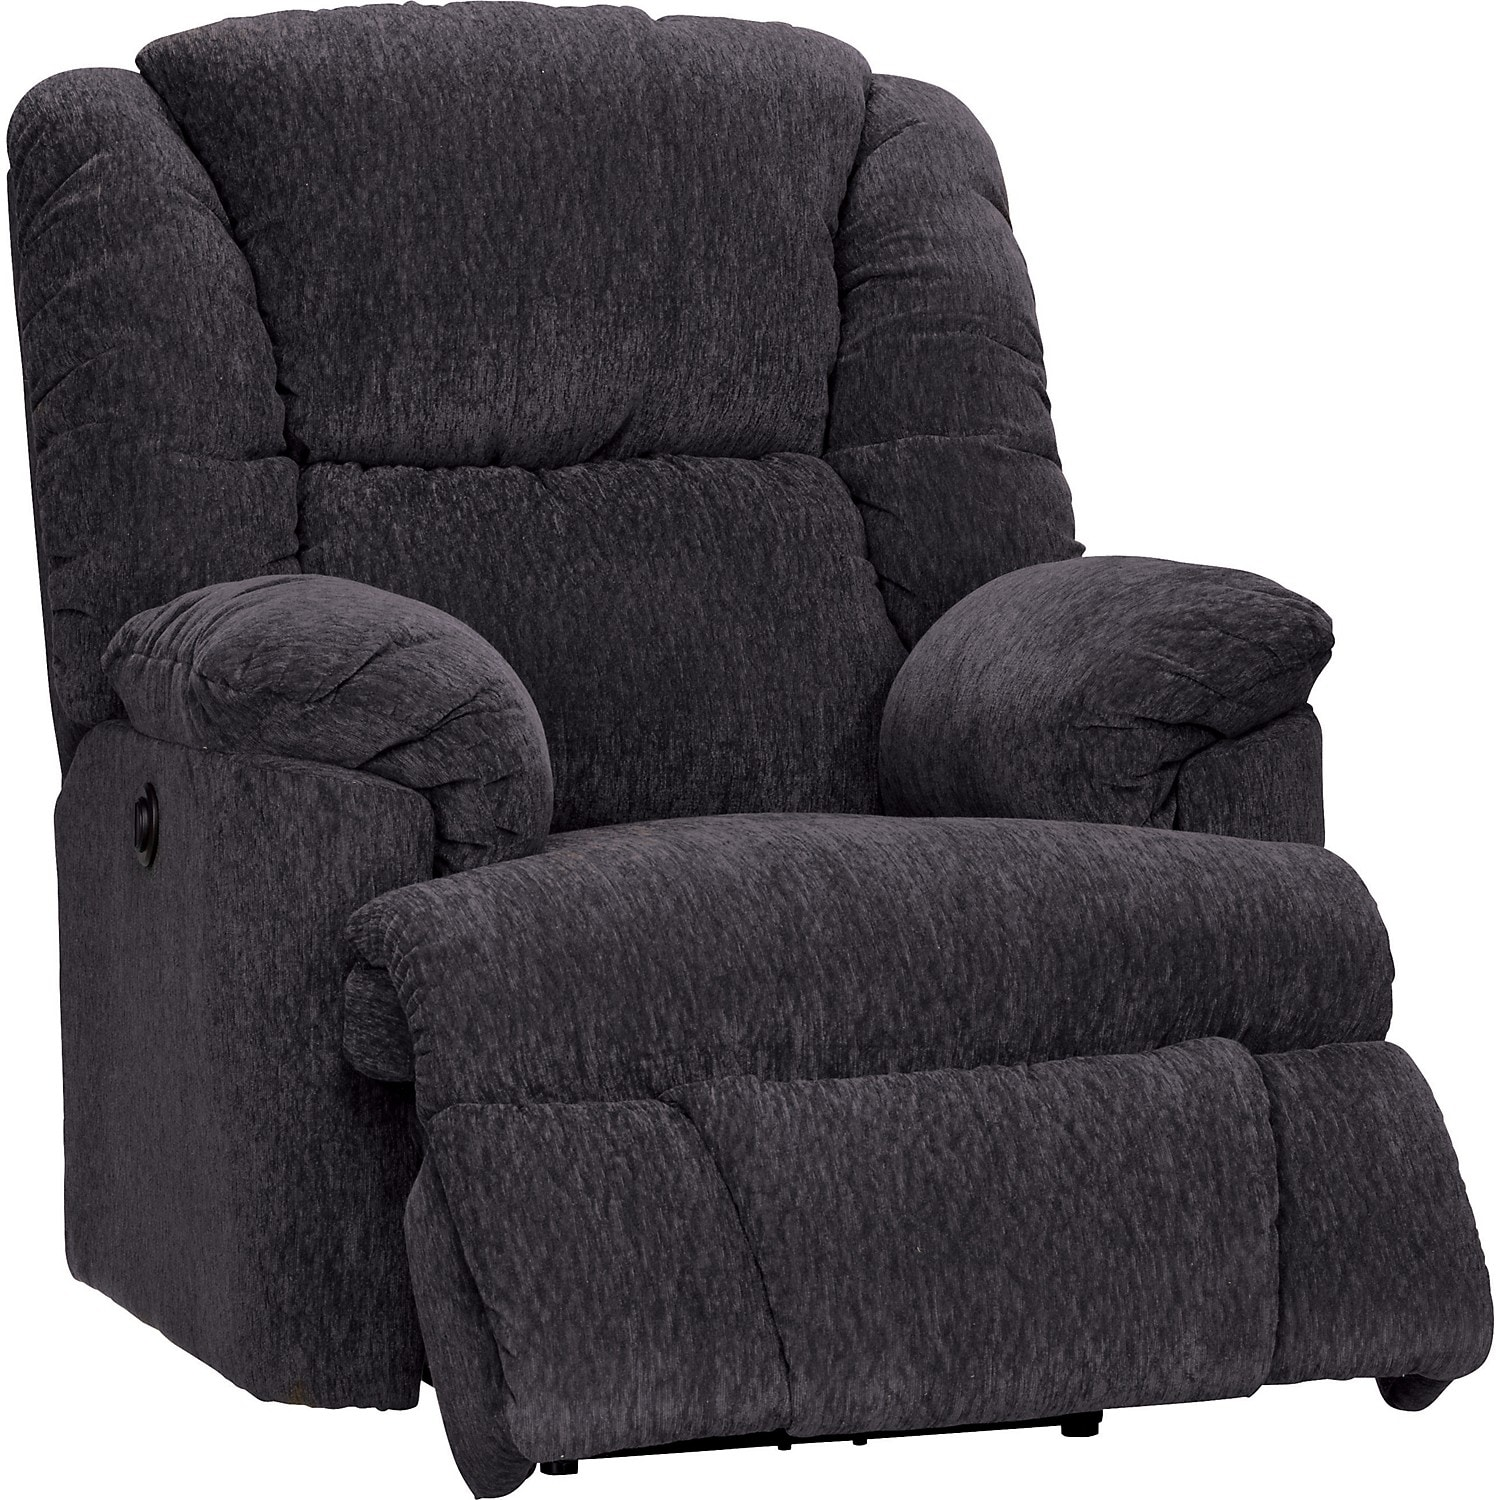 Bmaxx grey chenille power recliner the brick for Chair chair chair